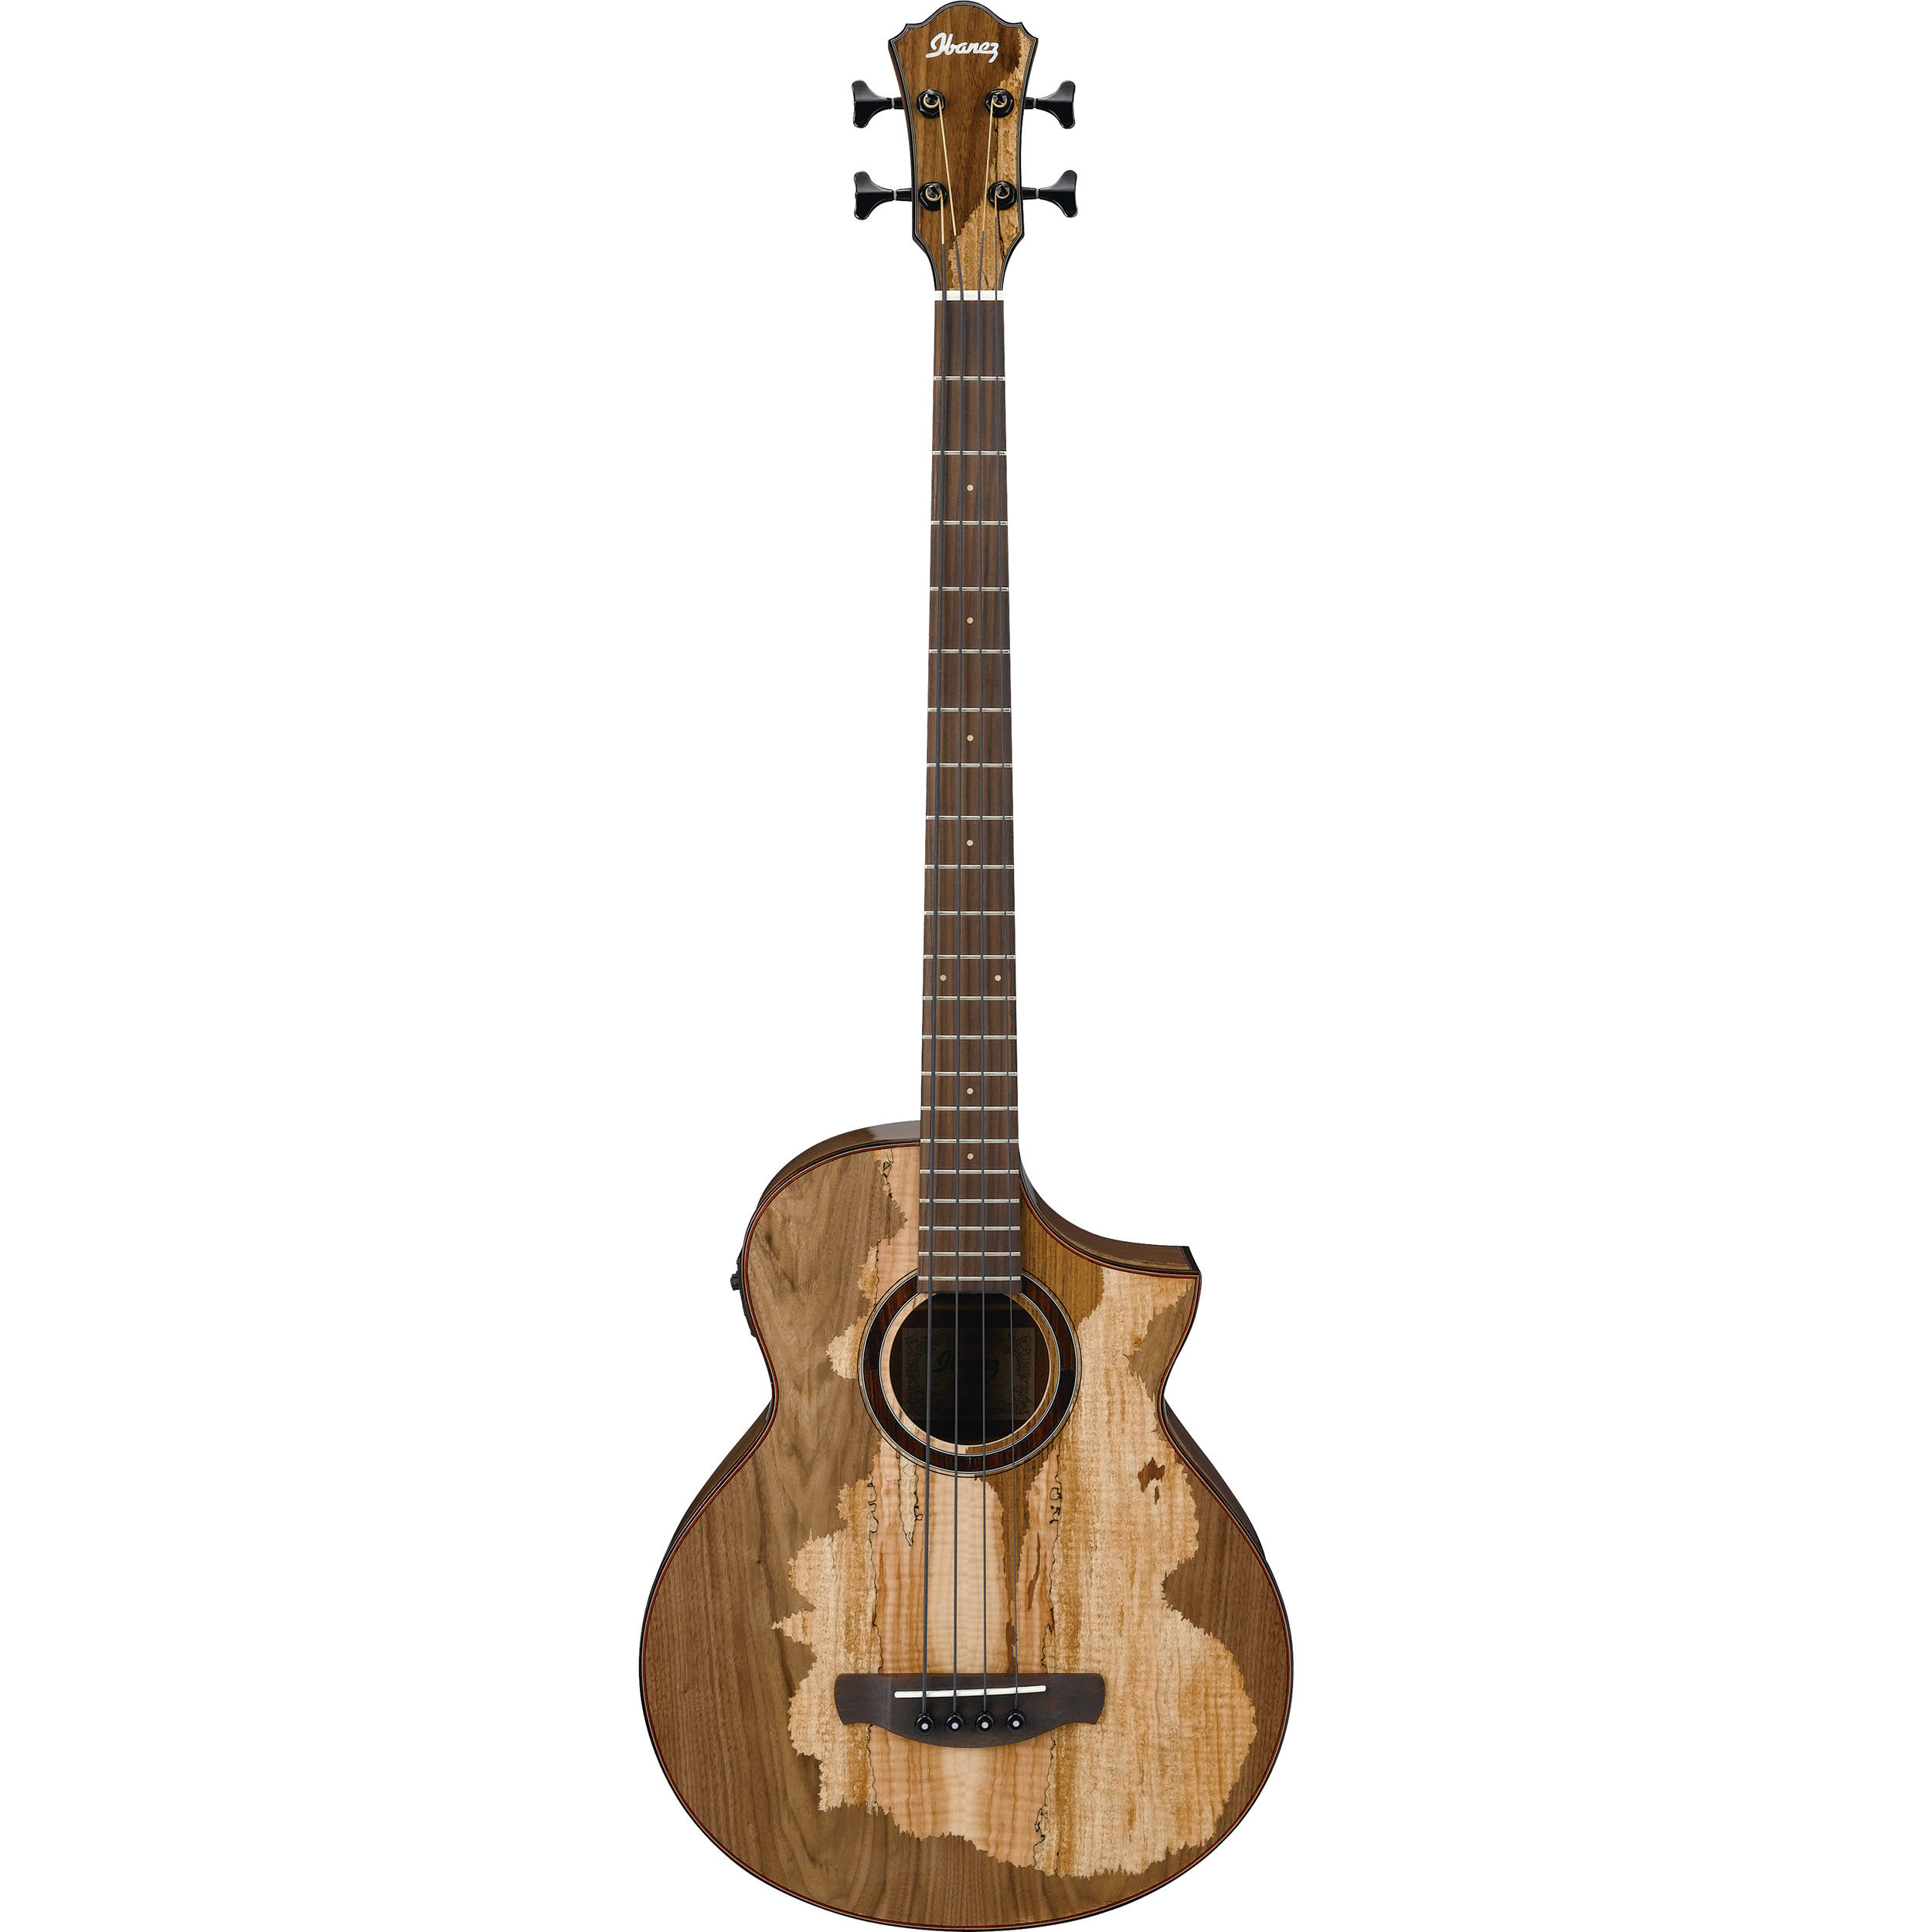 ibanez aewb50 exotic wood series acoustic electric bass aewb50nt. Black Bedroom Furniture Sets. Home Design Ideas